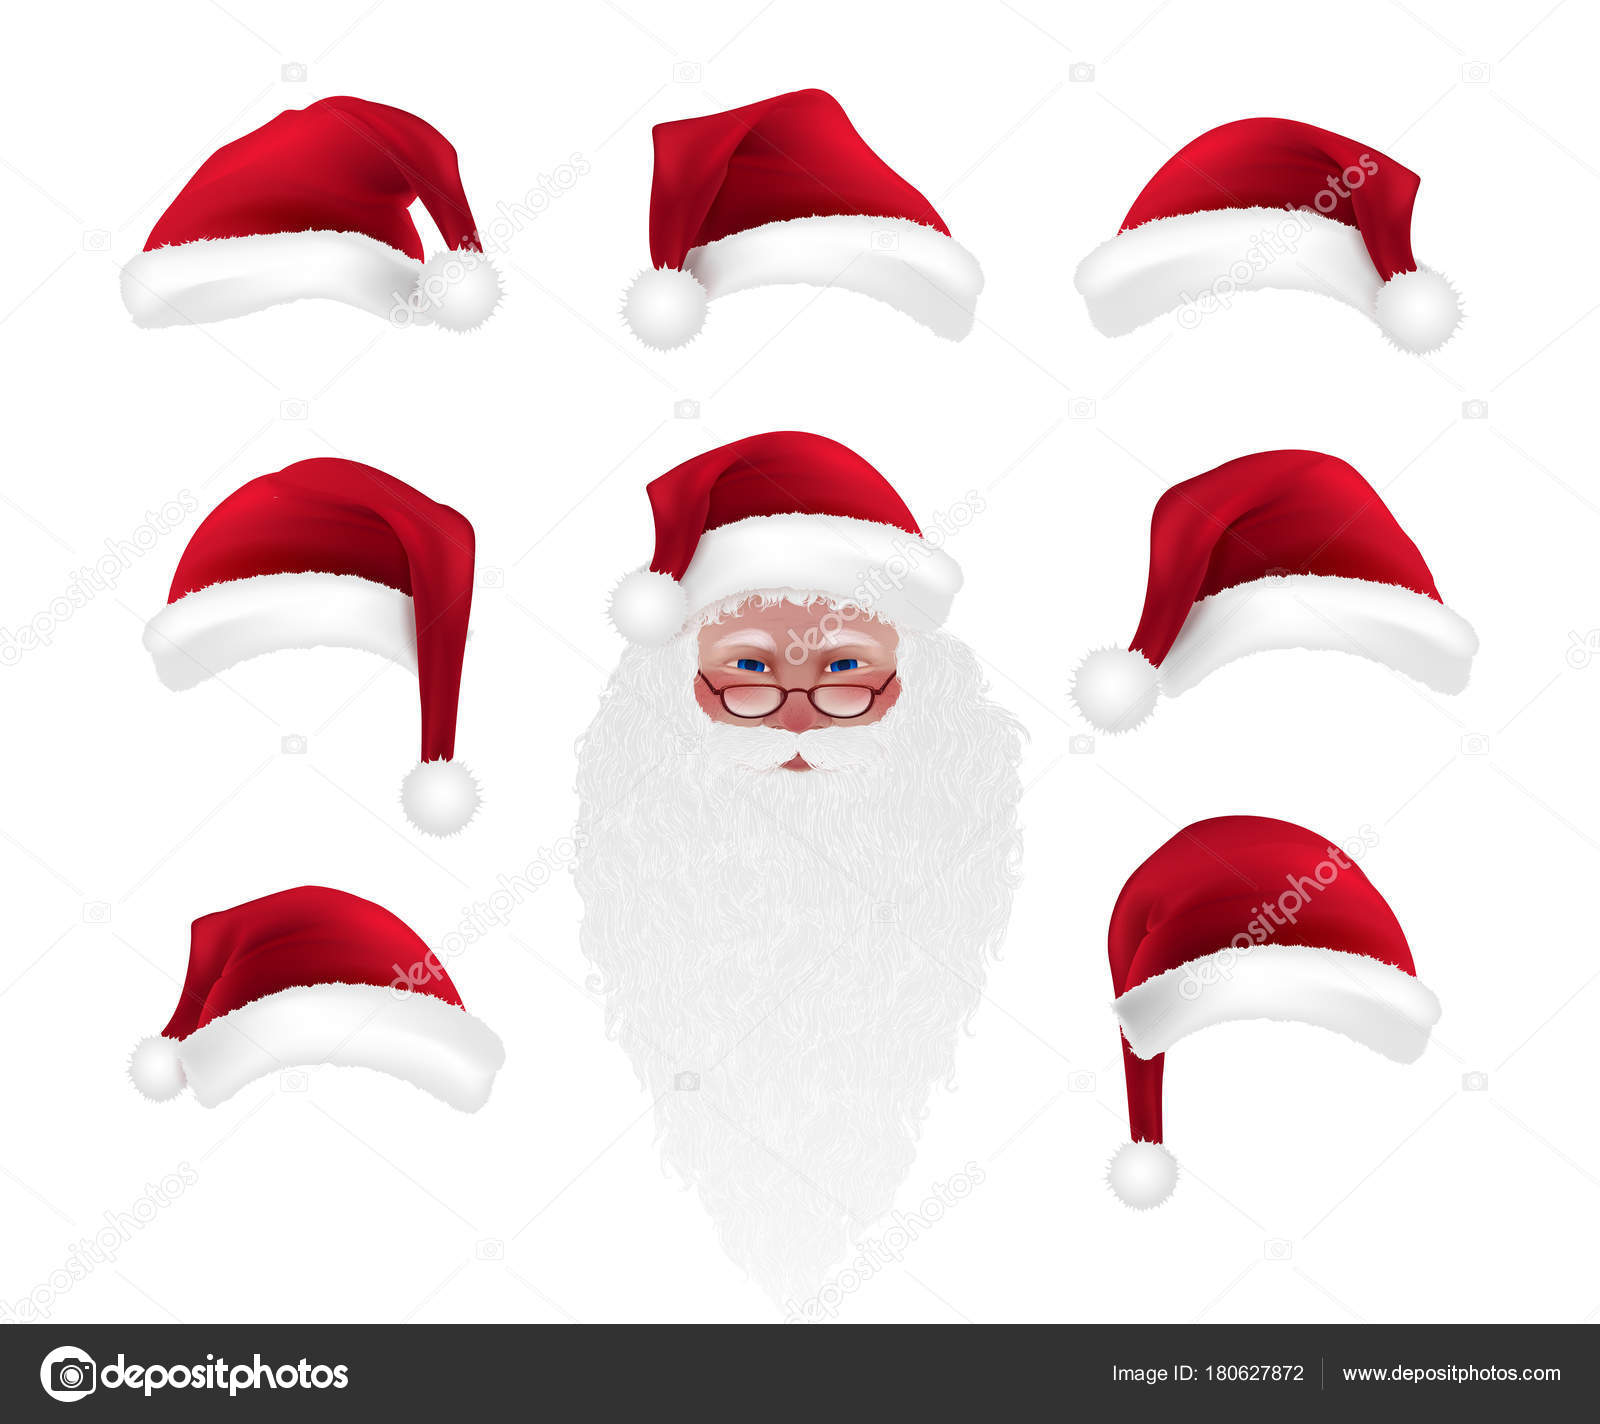 Photo Booth Weihnachten.Weihnachten Cartoon Foto Booth Requisiten Sammlung Santa Claus Hut